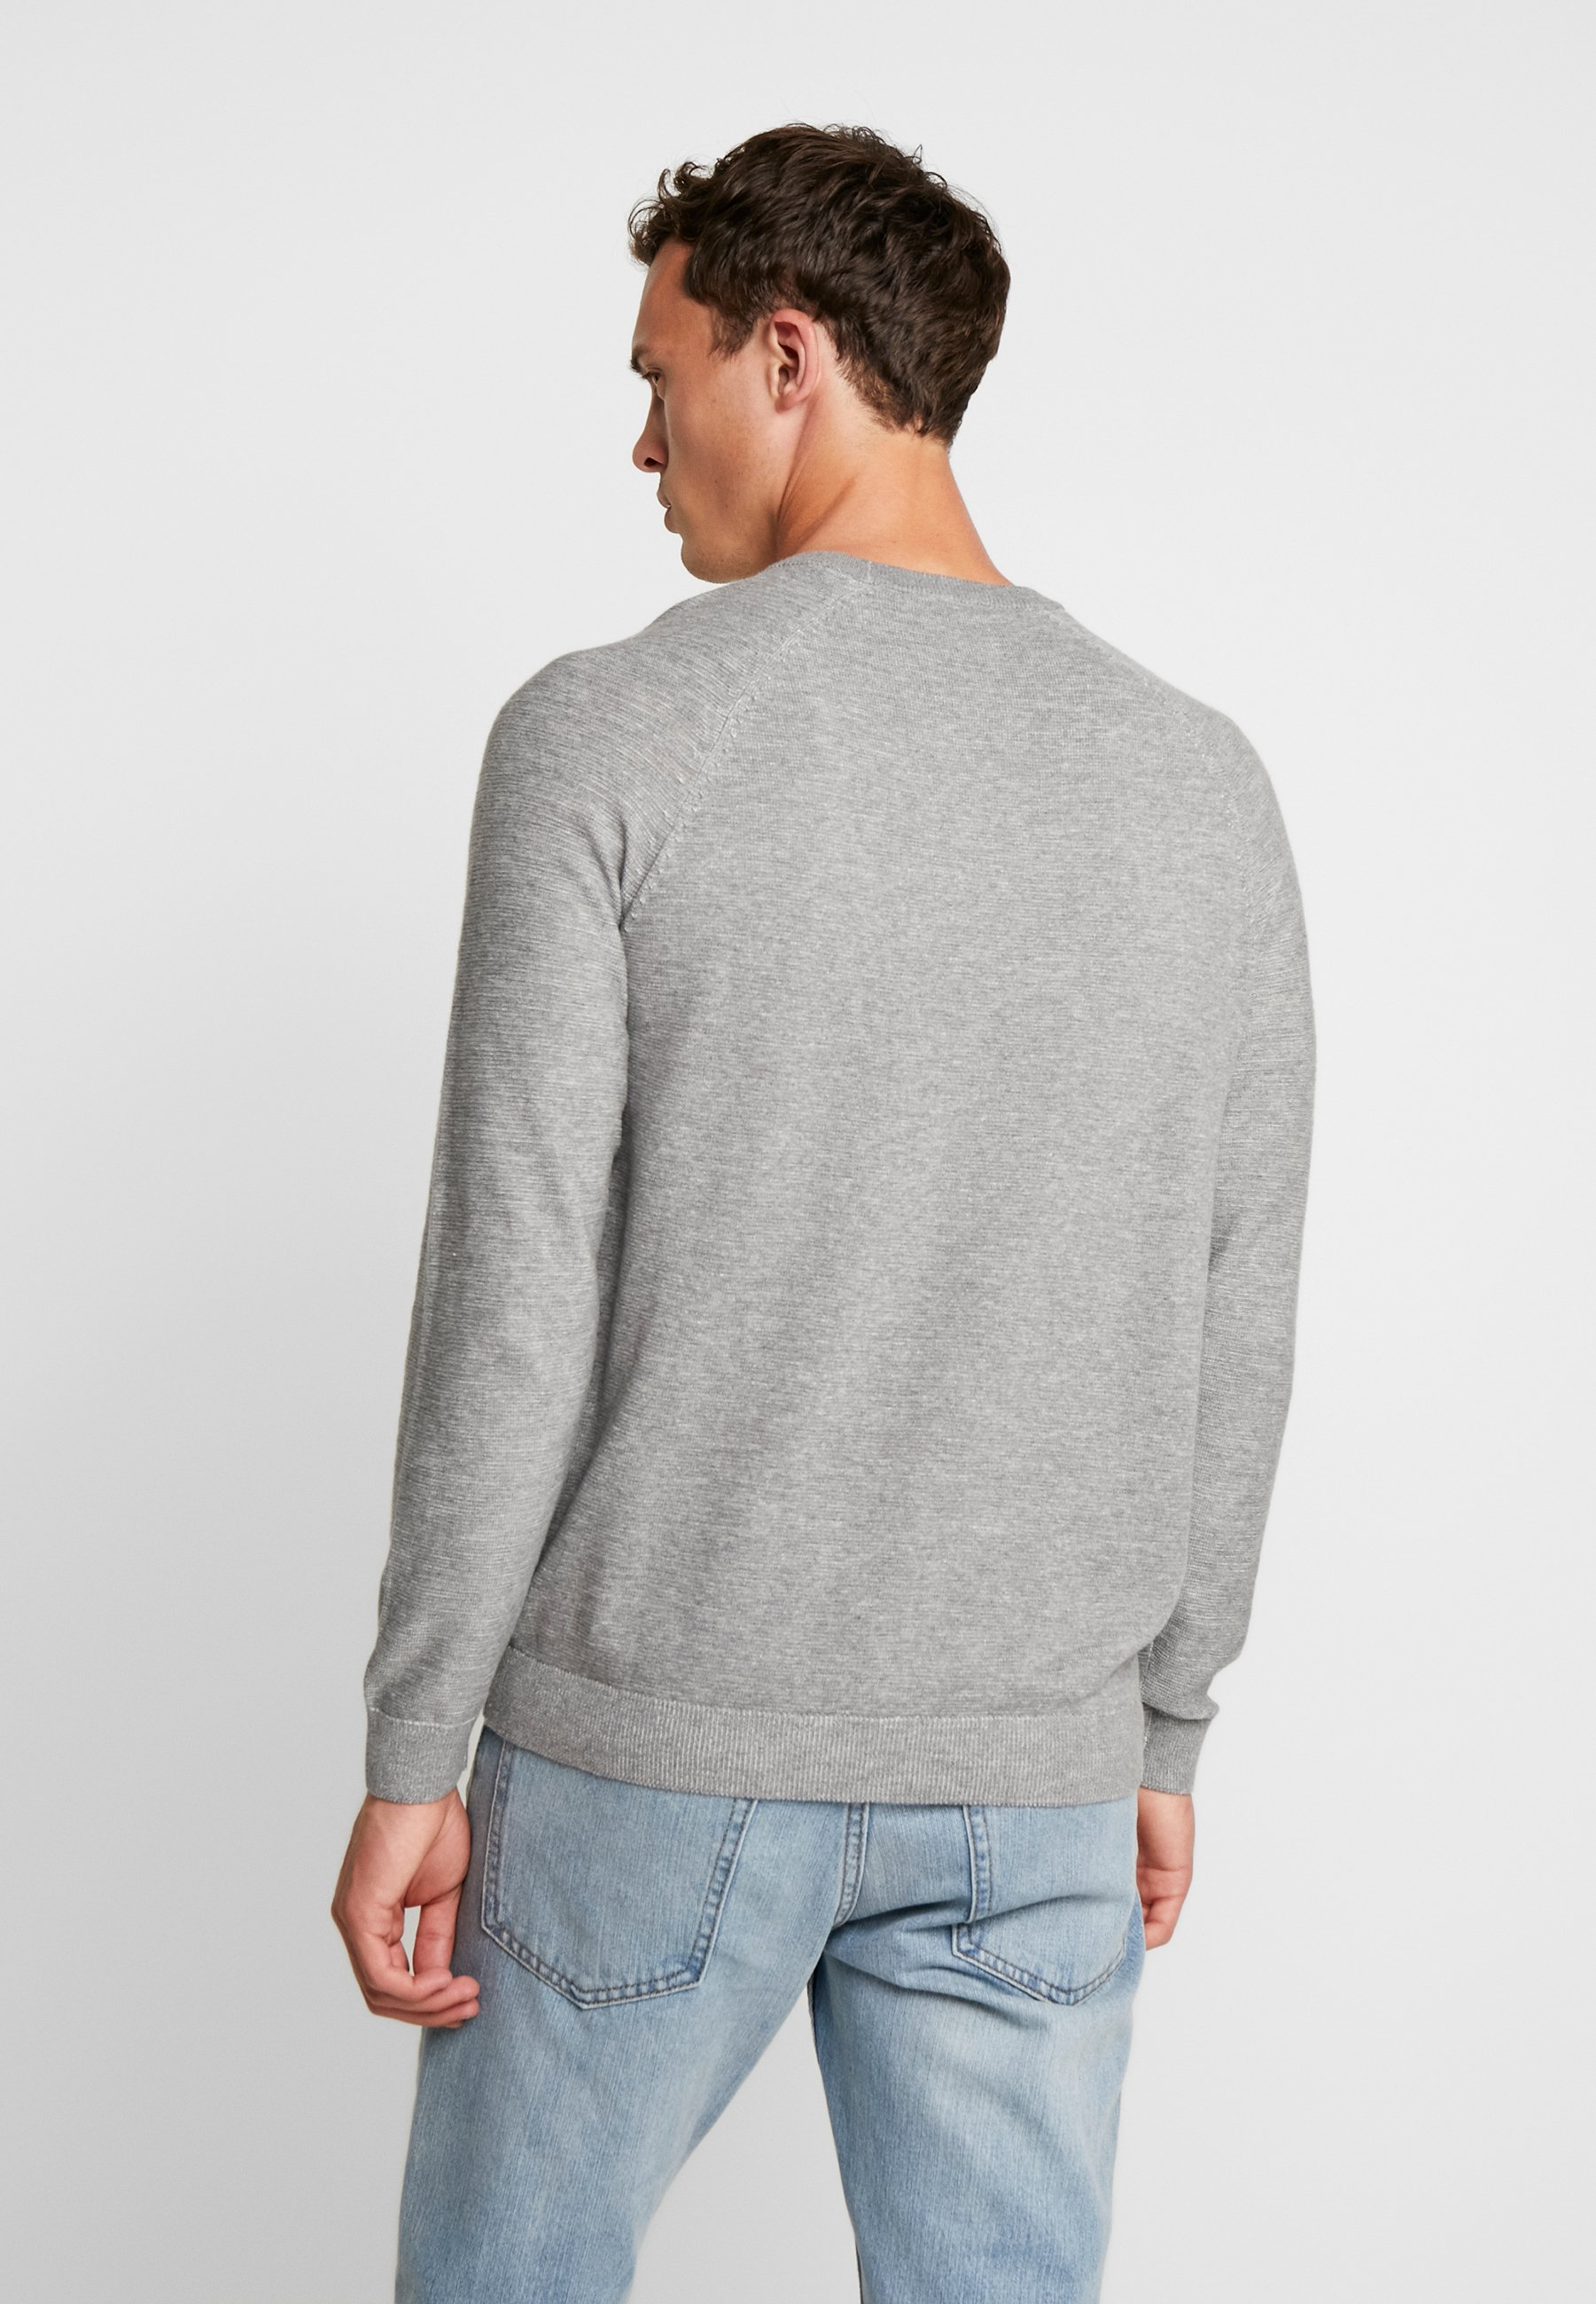 NeckPullover Plaited Light Grey Crew Esprit nkXwP80O